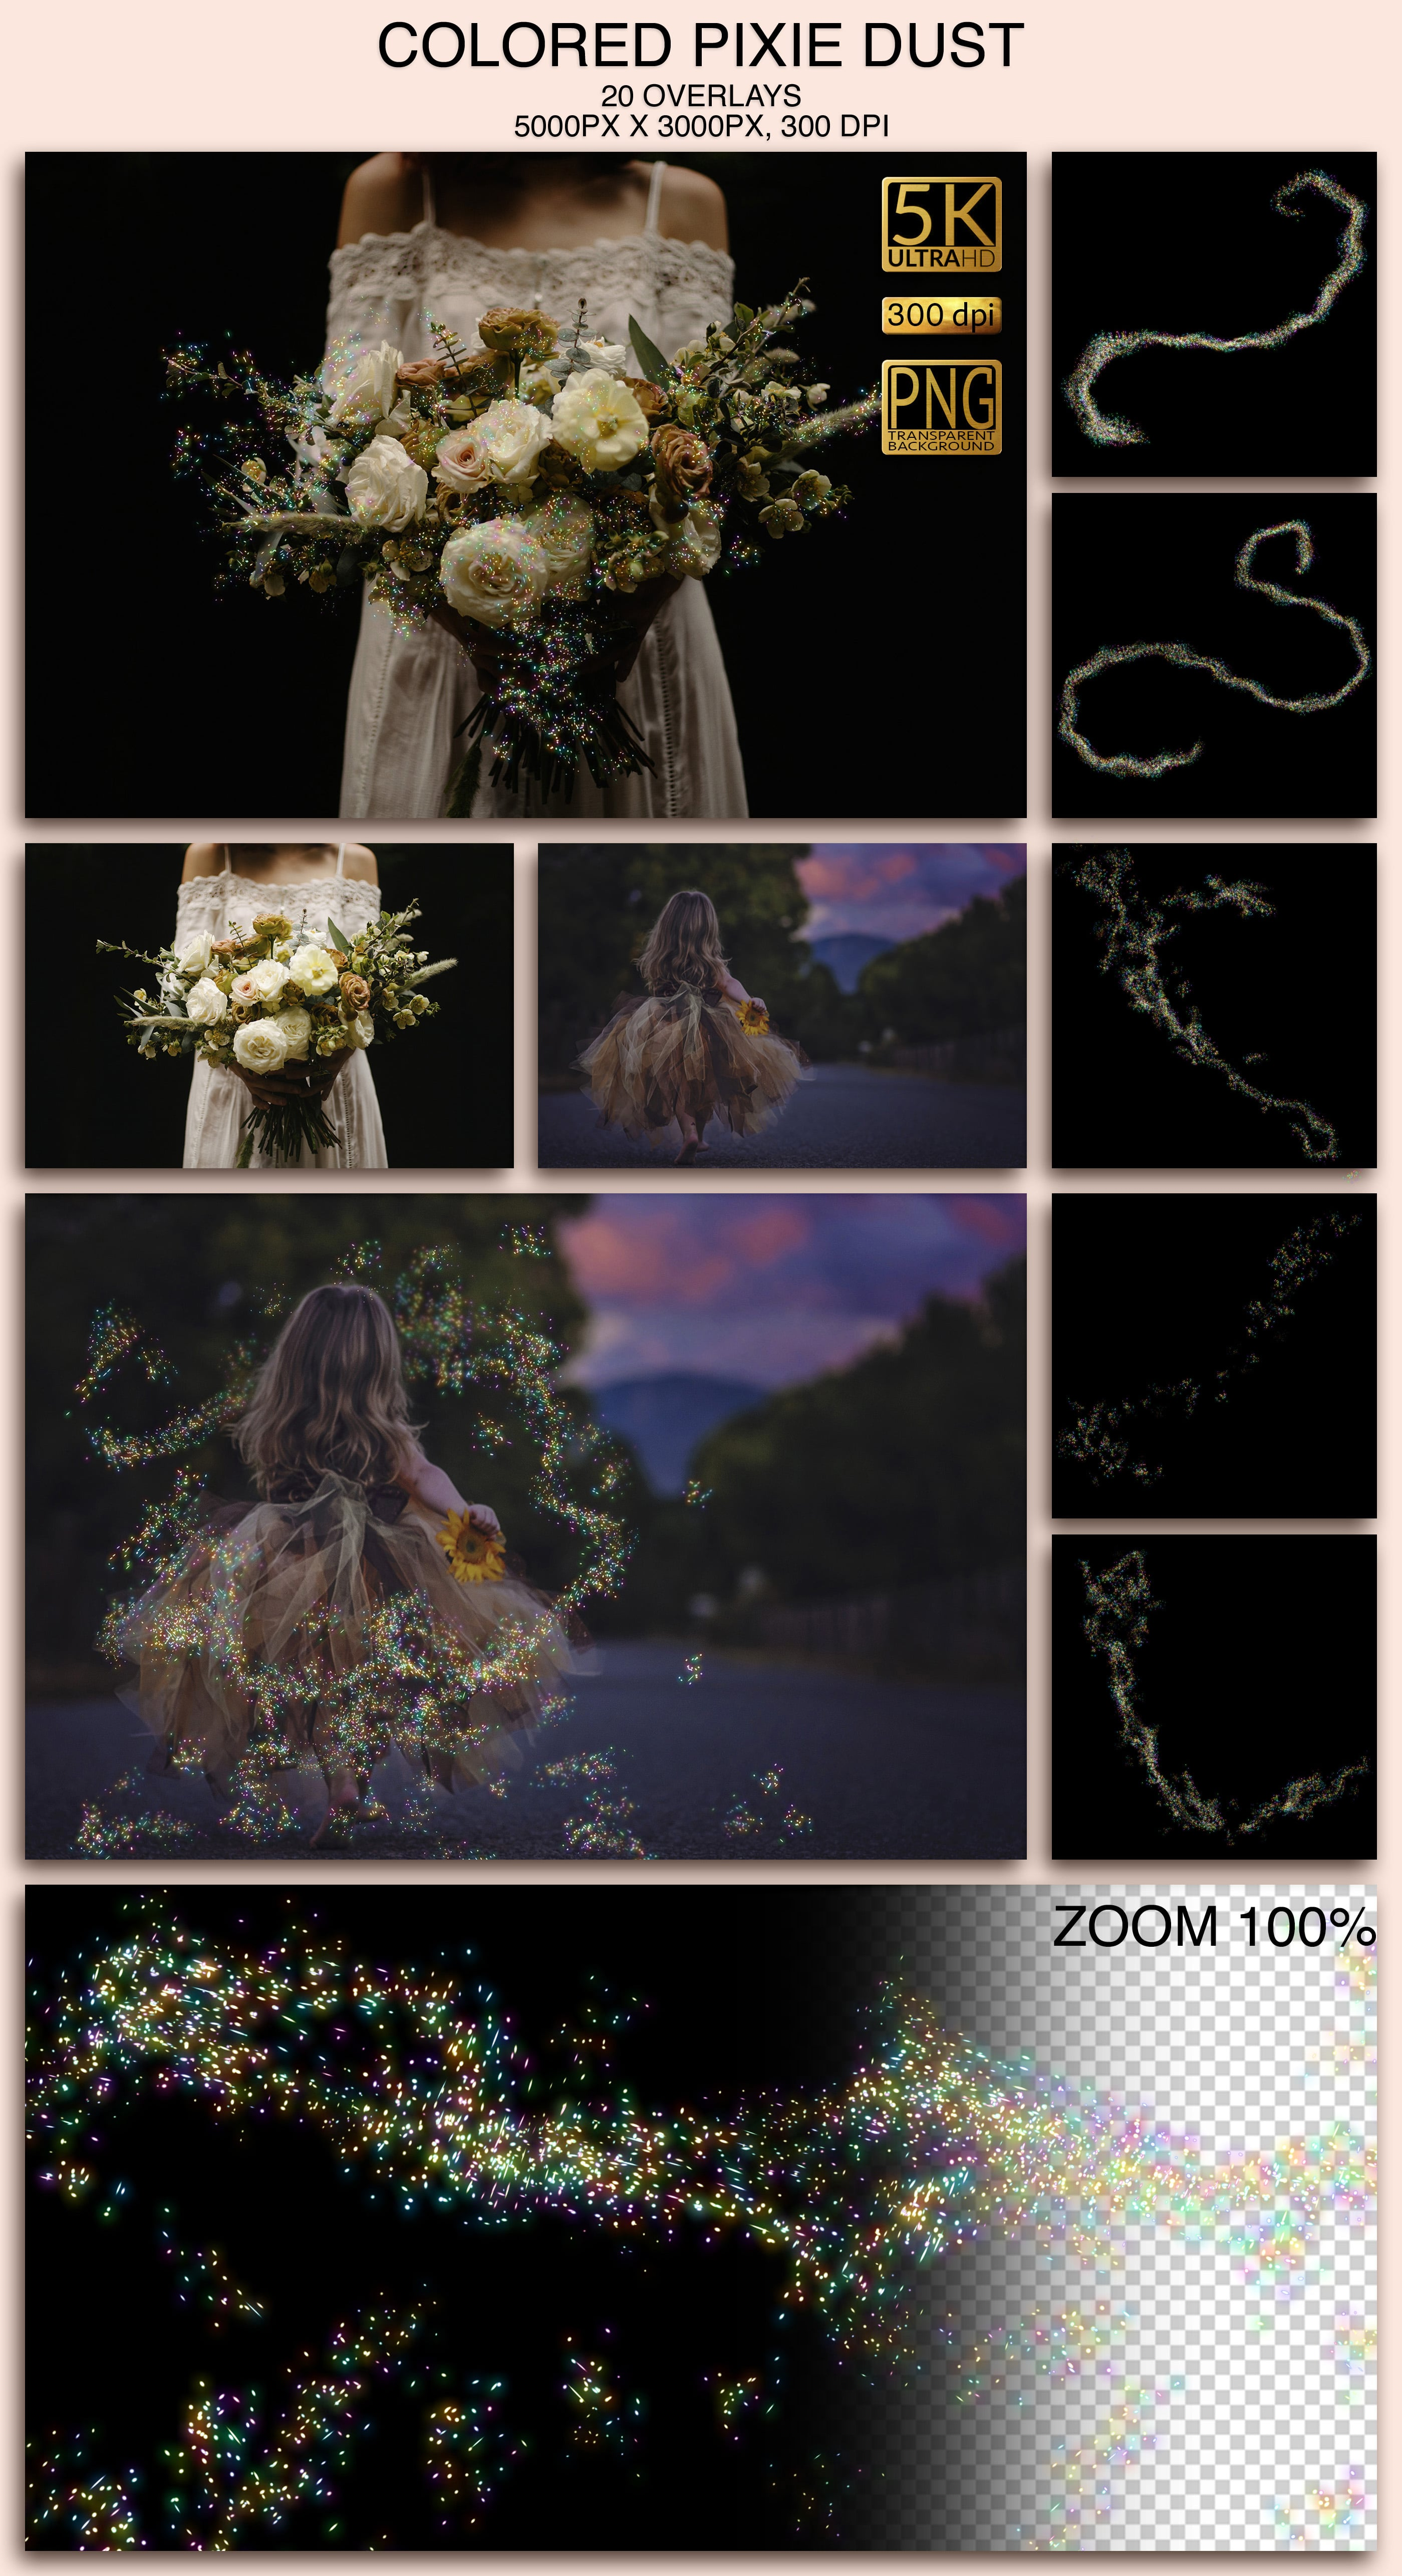 2006 Overlays Photoshop Bundle - Colored Pixie Dust Preview